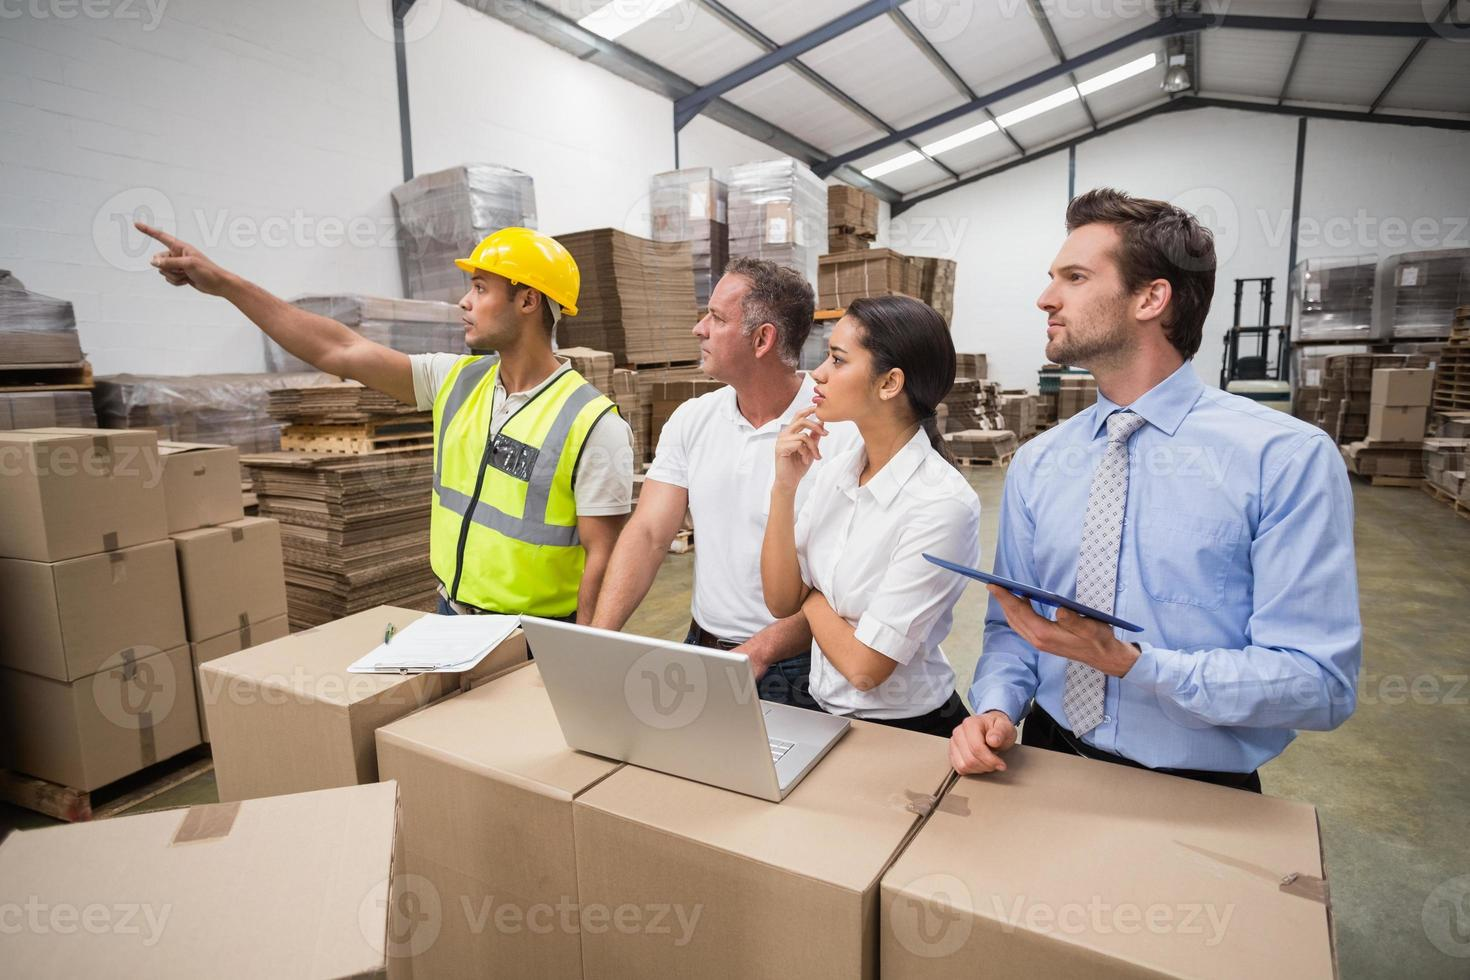 Warehouse worker pointing something to his colleagues photo